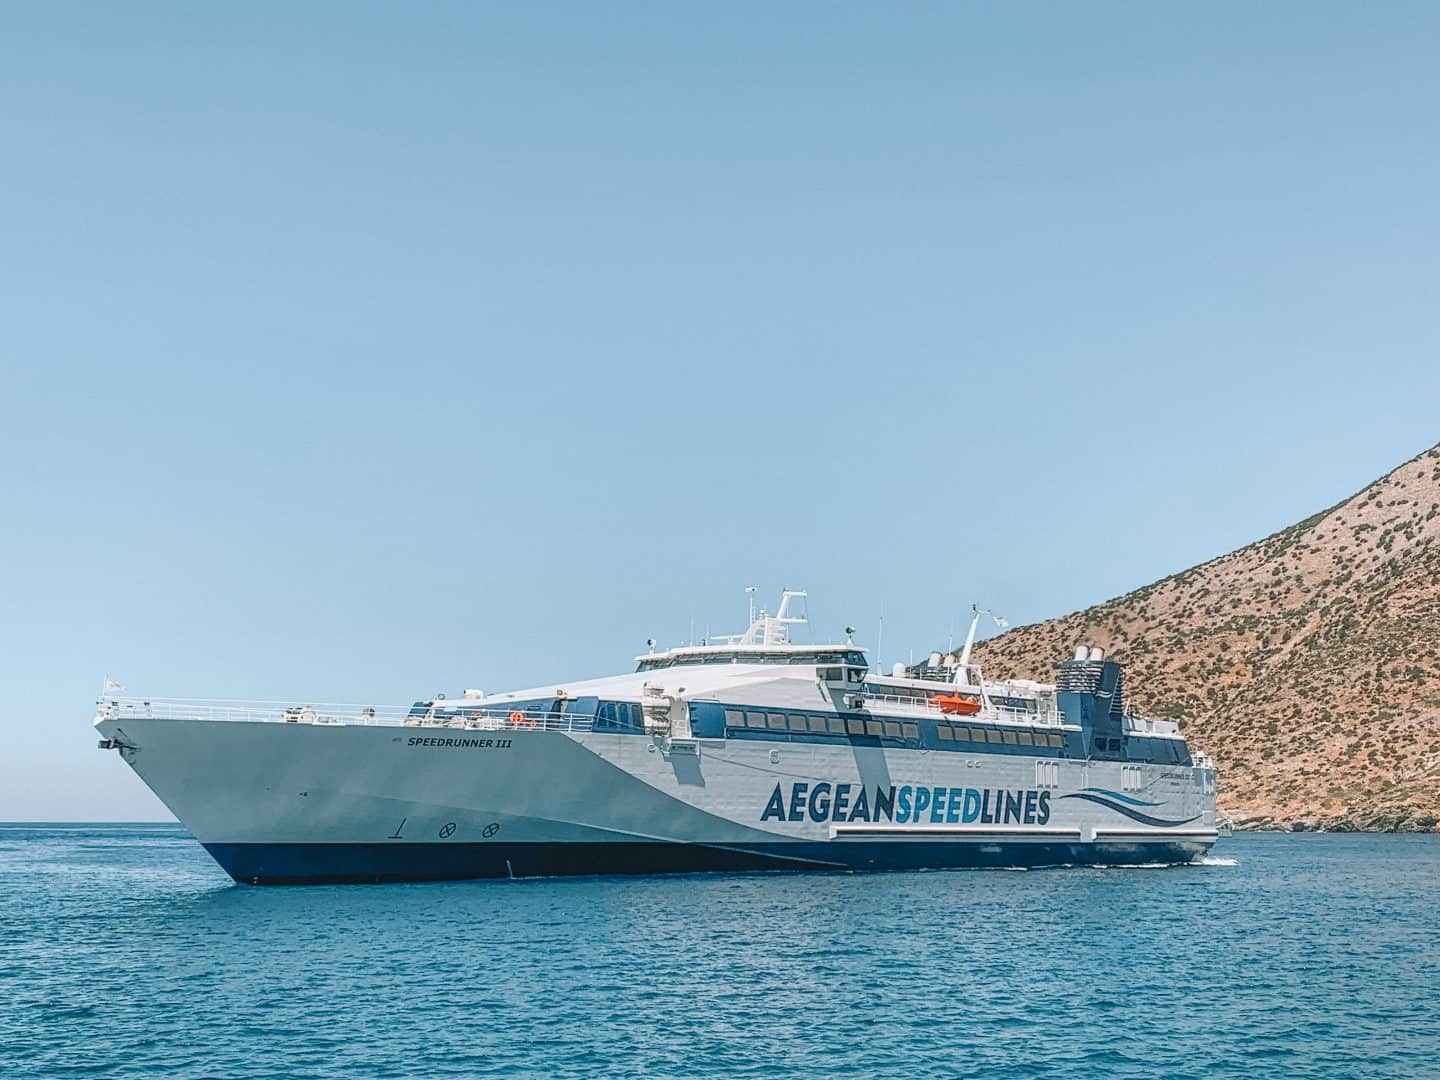 athens to milos, athens to milos ferry, milos to athens ferry, ferry to milos, piraeus milos ferry, boat from athens to milos, milos to athens, milos beaches, milos hotels, milos hotel, milos accommodation, sarakiniko, milos island greece, sarakiniko beach, milos greece beaches, milos cyclades, sarakiniko milos, milos holidays, milos sarakiniko, best beaches in milos, milos grece, sarakiniko beach milos, tsigrado milos, milos island, tsigrado beach milos, best beaches in greece, milos camping, milos island beaches, milos map, getting around milos, papafragas beach milos, top beaches in greece, milos greece weather, what to do in milos, how to get to milos greece, milos beach, milos in greece, milos map greece, milos blog